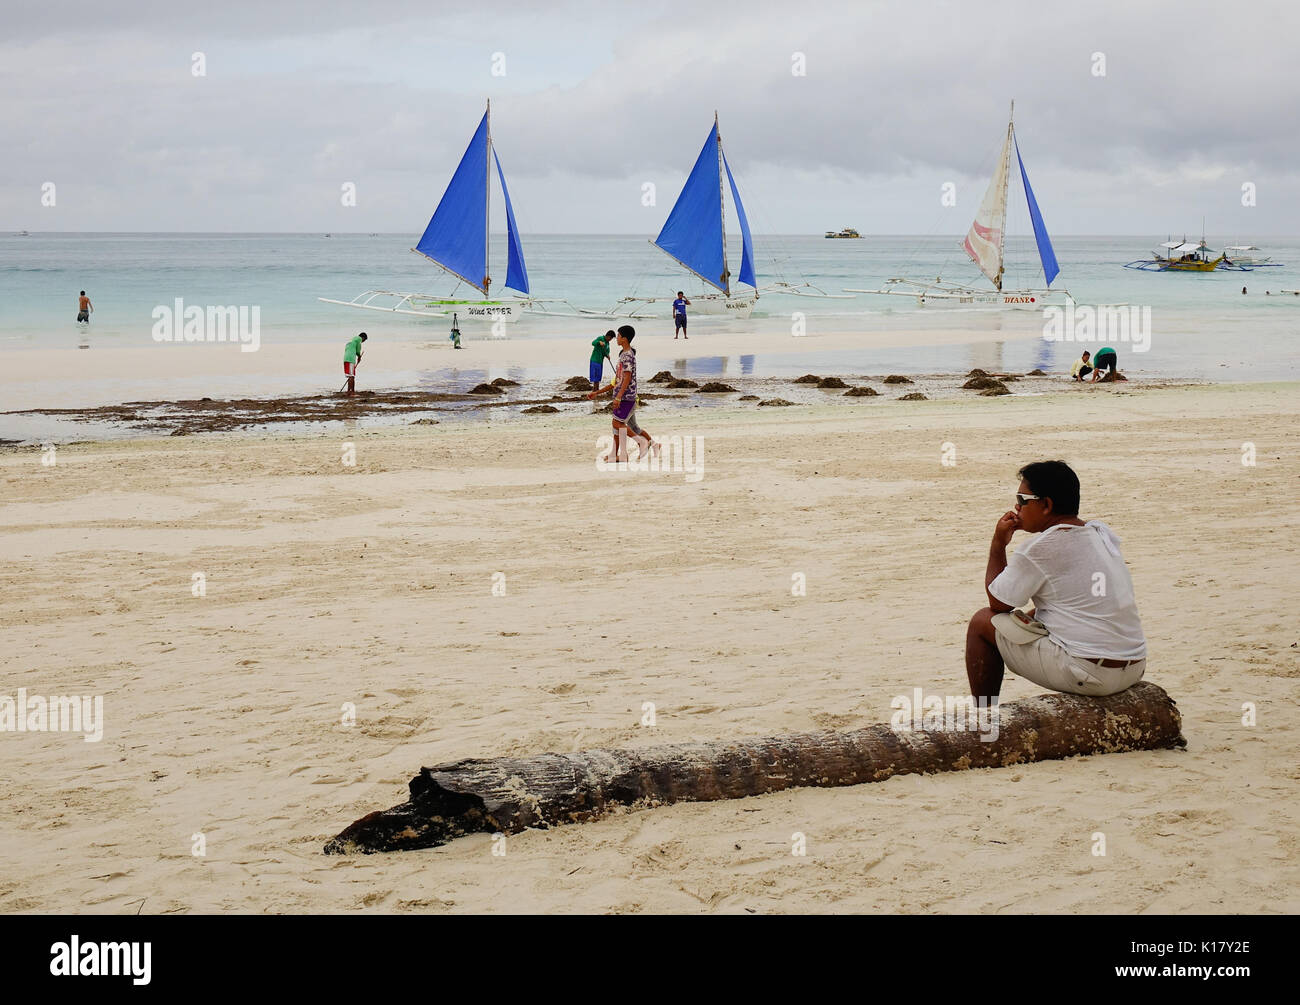 Kalibo, Philippines - Dec 17, 2015. People on the beach in Boracay island, Philippines. Boracay Island and its beaches have received awards from numer - Stock Image